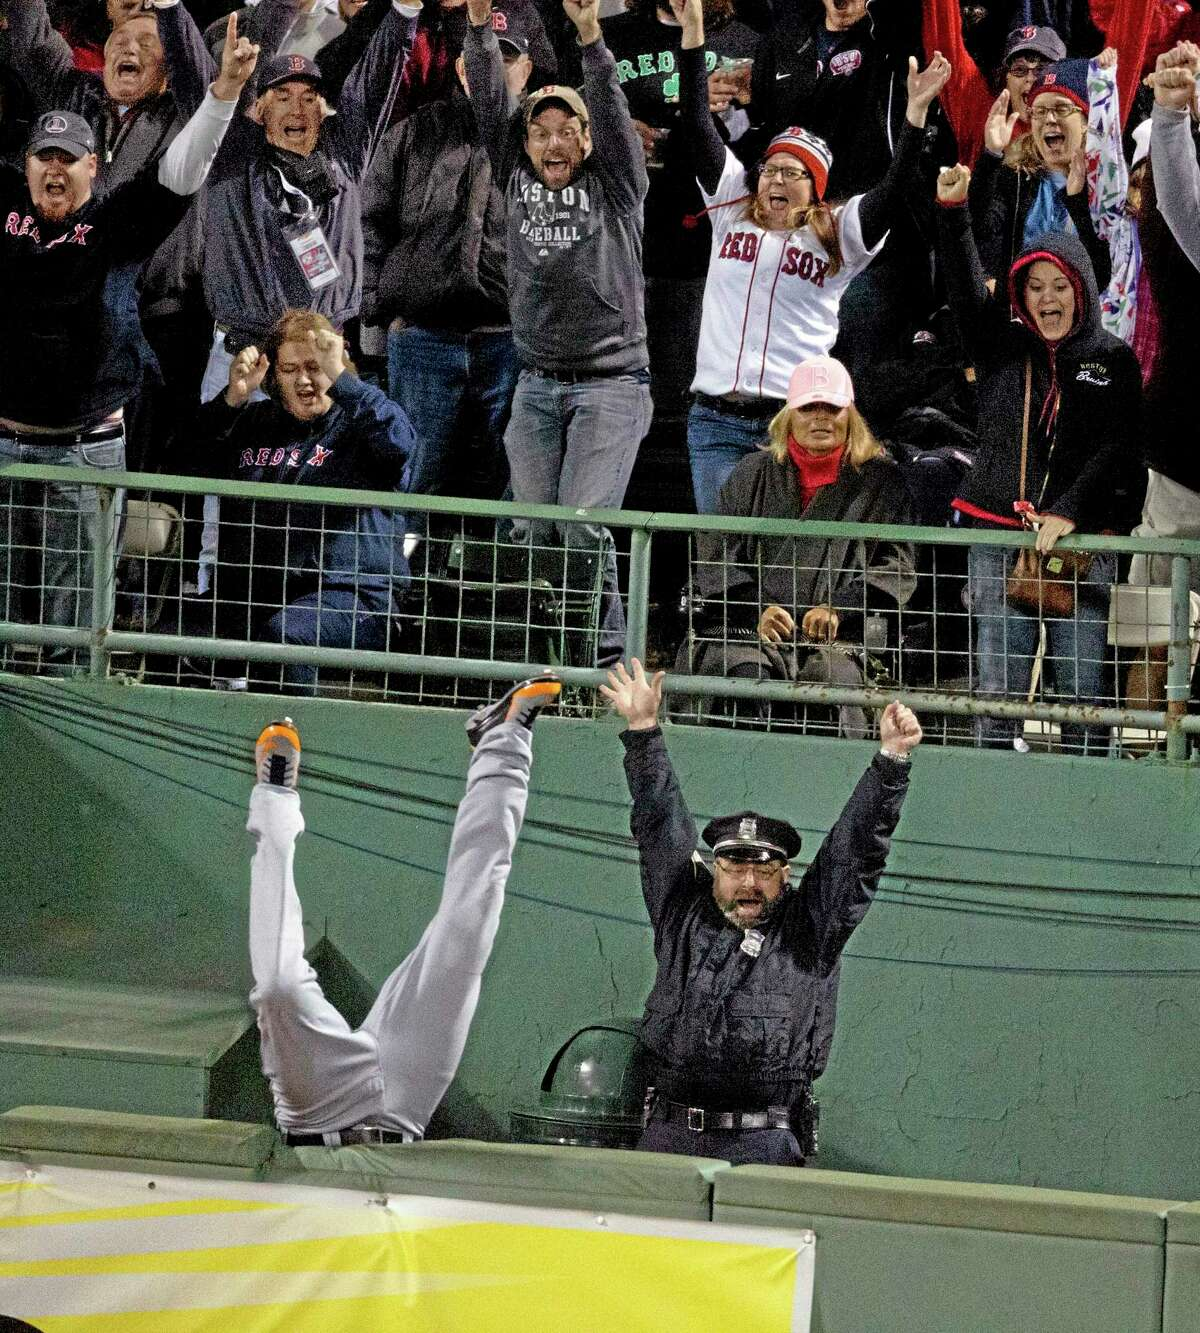 Fans and Boston police officer Steve Horgan celebrate as Detroit Tigers right fielder Torii Hunter falls over the fence into the bullpen trying to catch a grand slam hit by Red Sox designated hitter David Ortiz in Game 2 of the American League championship series on Sunday night in Boston.